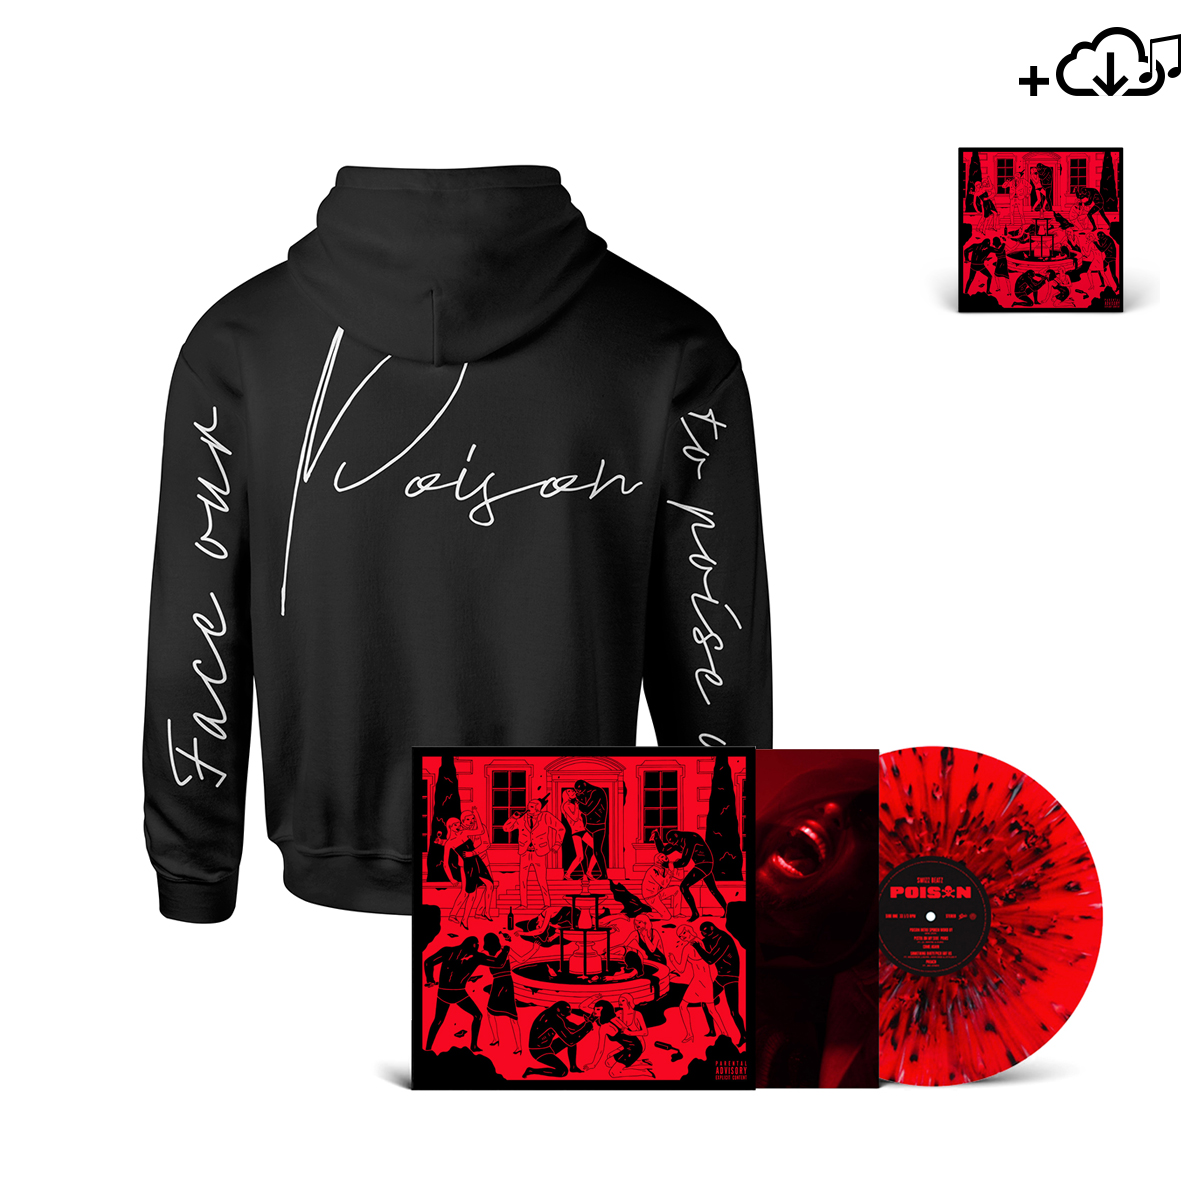 POISON COVER PULLOVER HOODIE, VINYL & DOWNLOAD